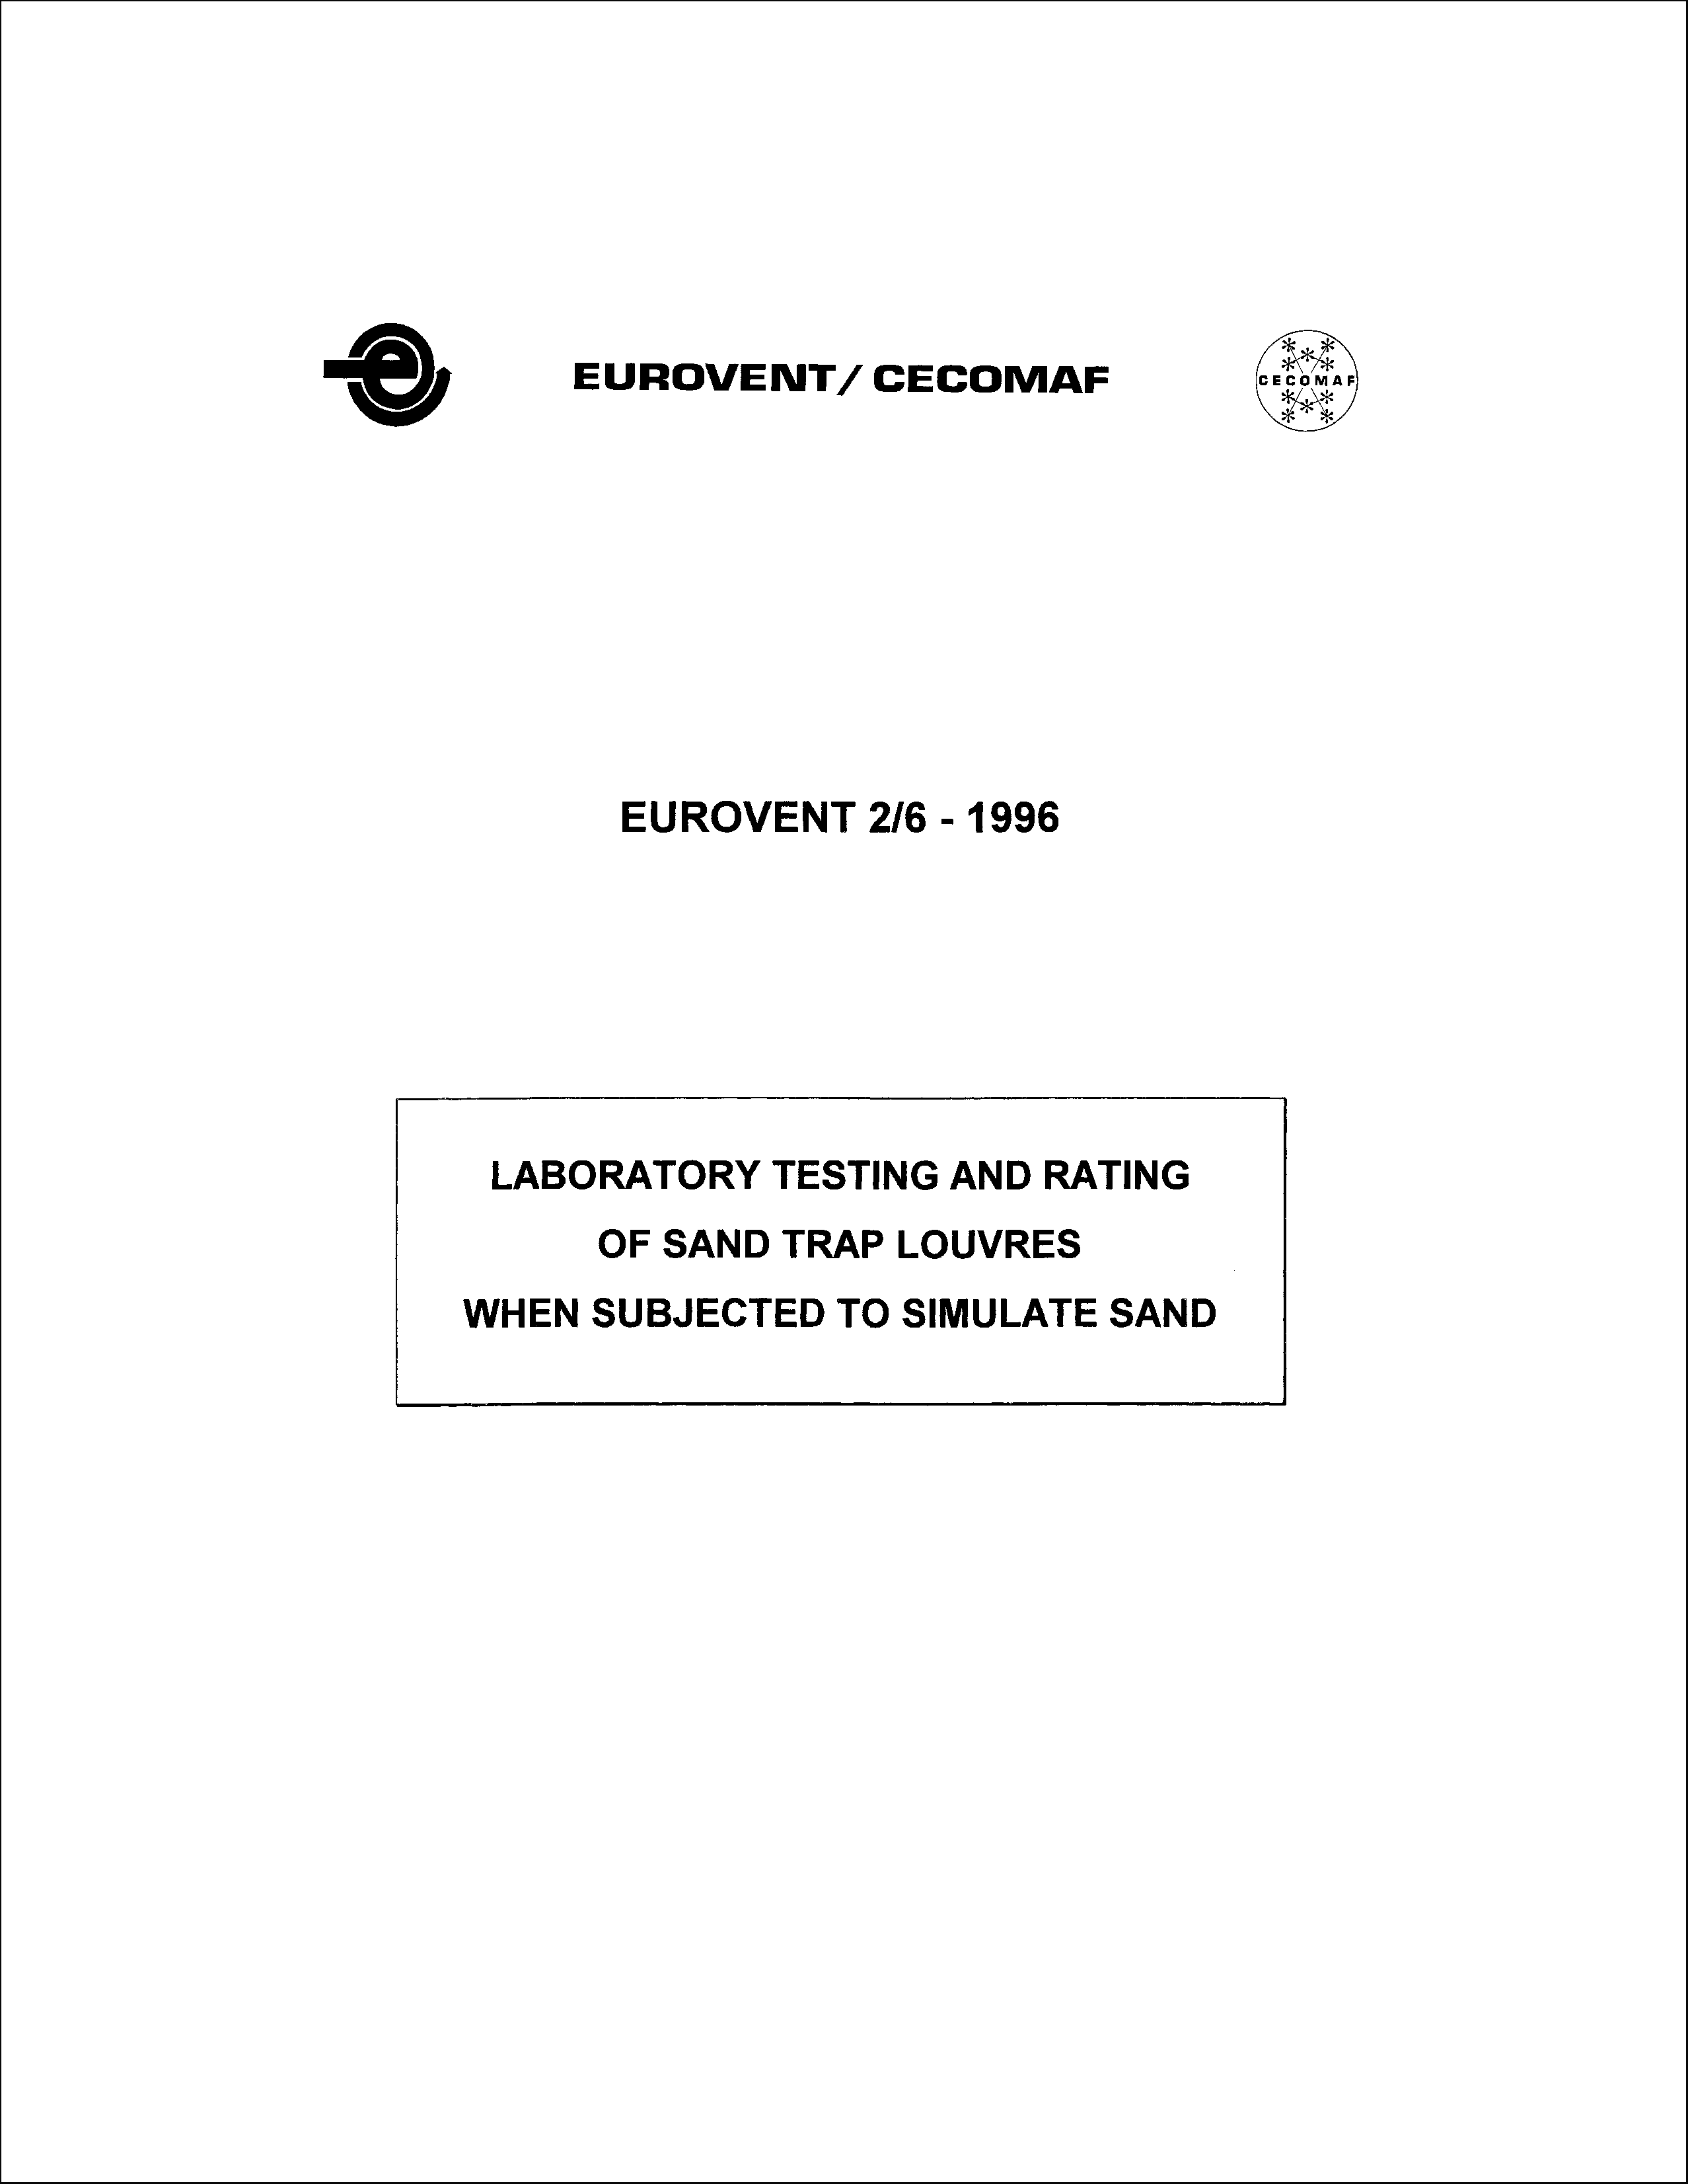 1996 - Laboratory testing and rating of sand trap louvres when subjected to simulate sand